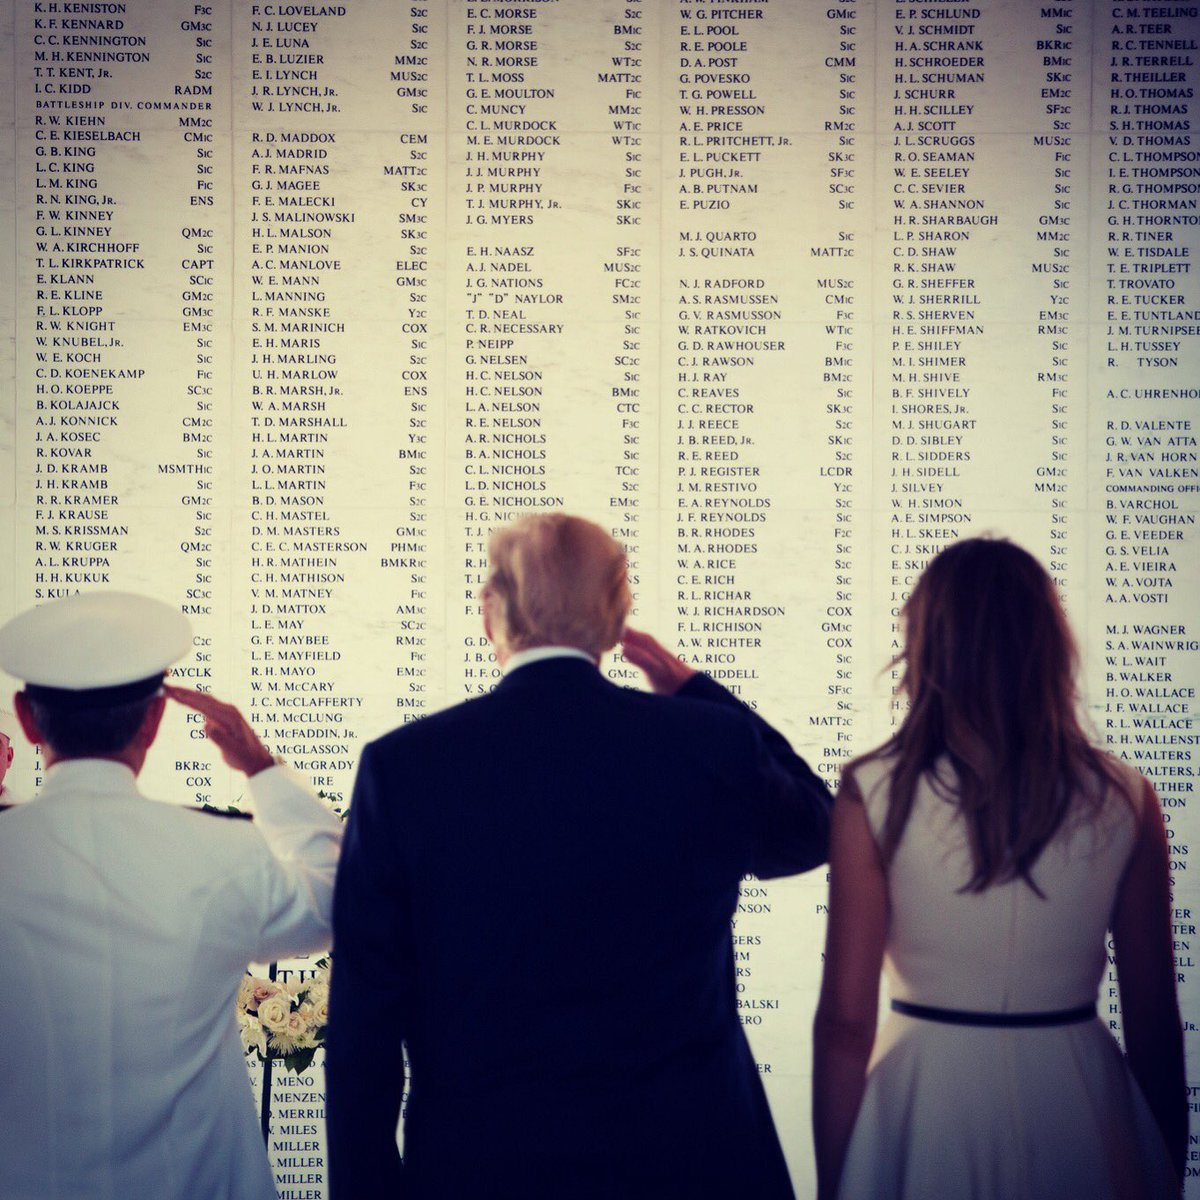 Today we honor Pearl Harbor Heroes. 12/7/1941 Thank you to all military for your courage and sacrifice! https://t.co/fuxvoaXAno